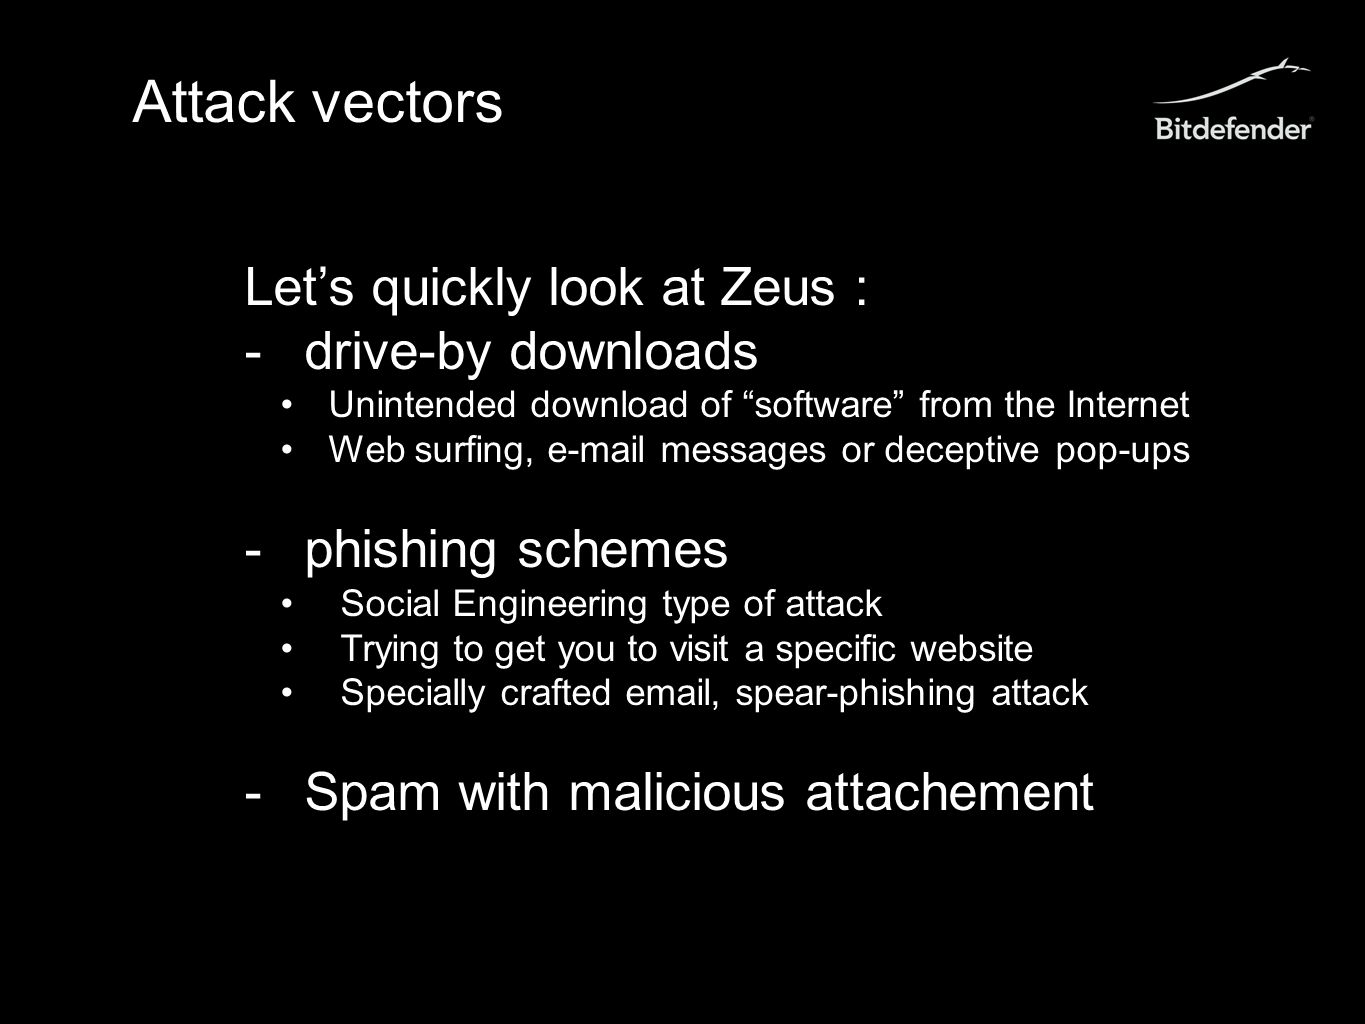 Attack vectors Let's quickly look at Zeus : -drive-by downloads Unintended download of software from the Internet Web surfing, e-mail messages or deceptive pop-ups -phishing schemes Social Engineering type of attack Trying to get you to visit a specific website Specially crafted email, spear-phishing attack -Spam with malicious attachement